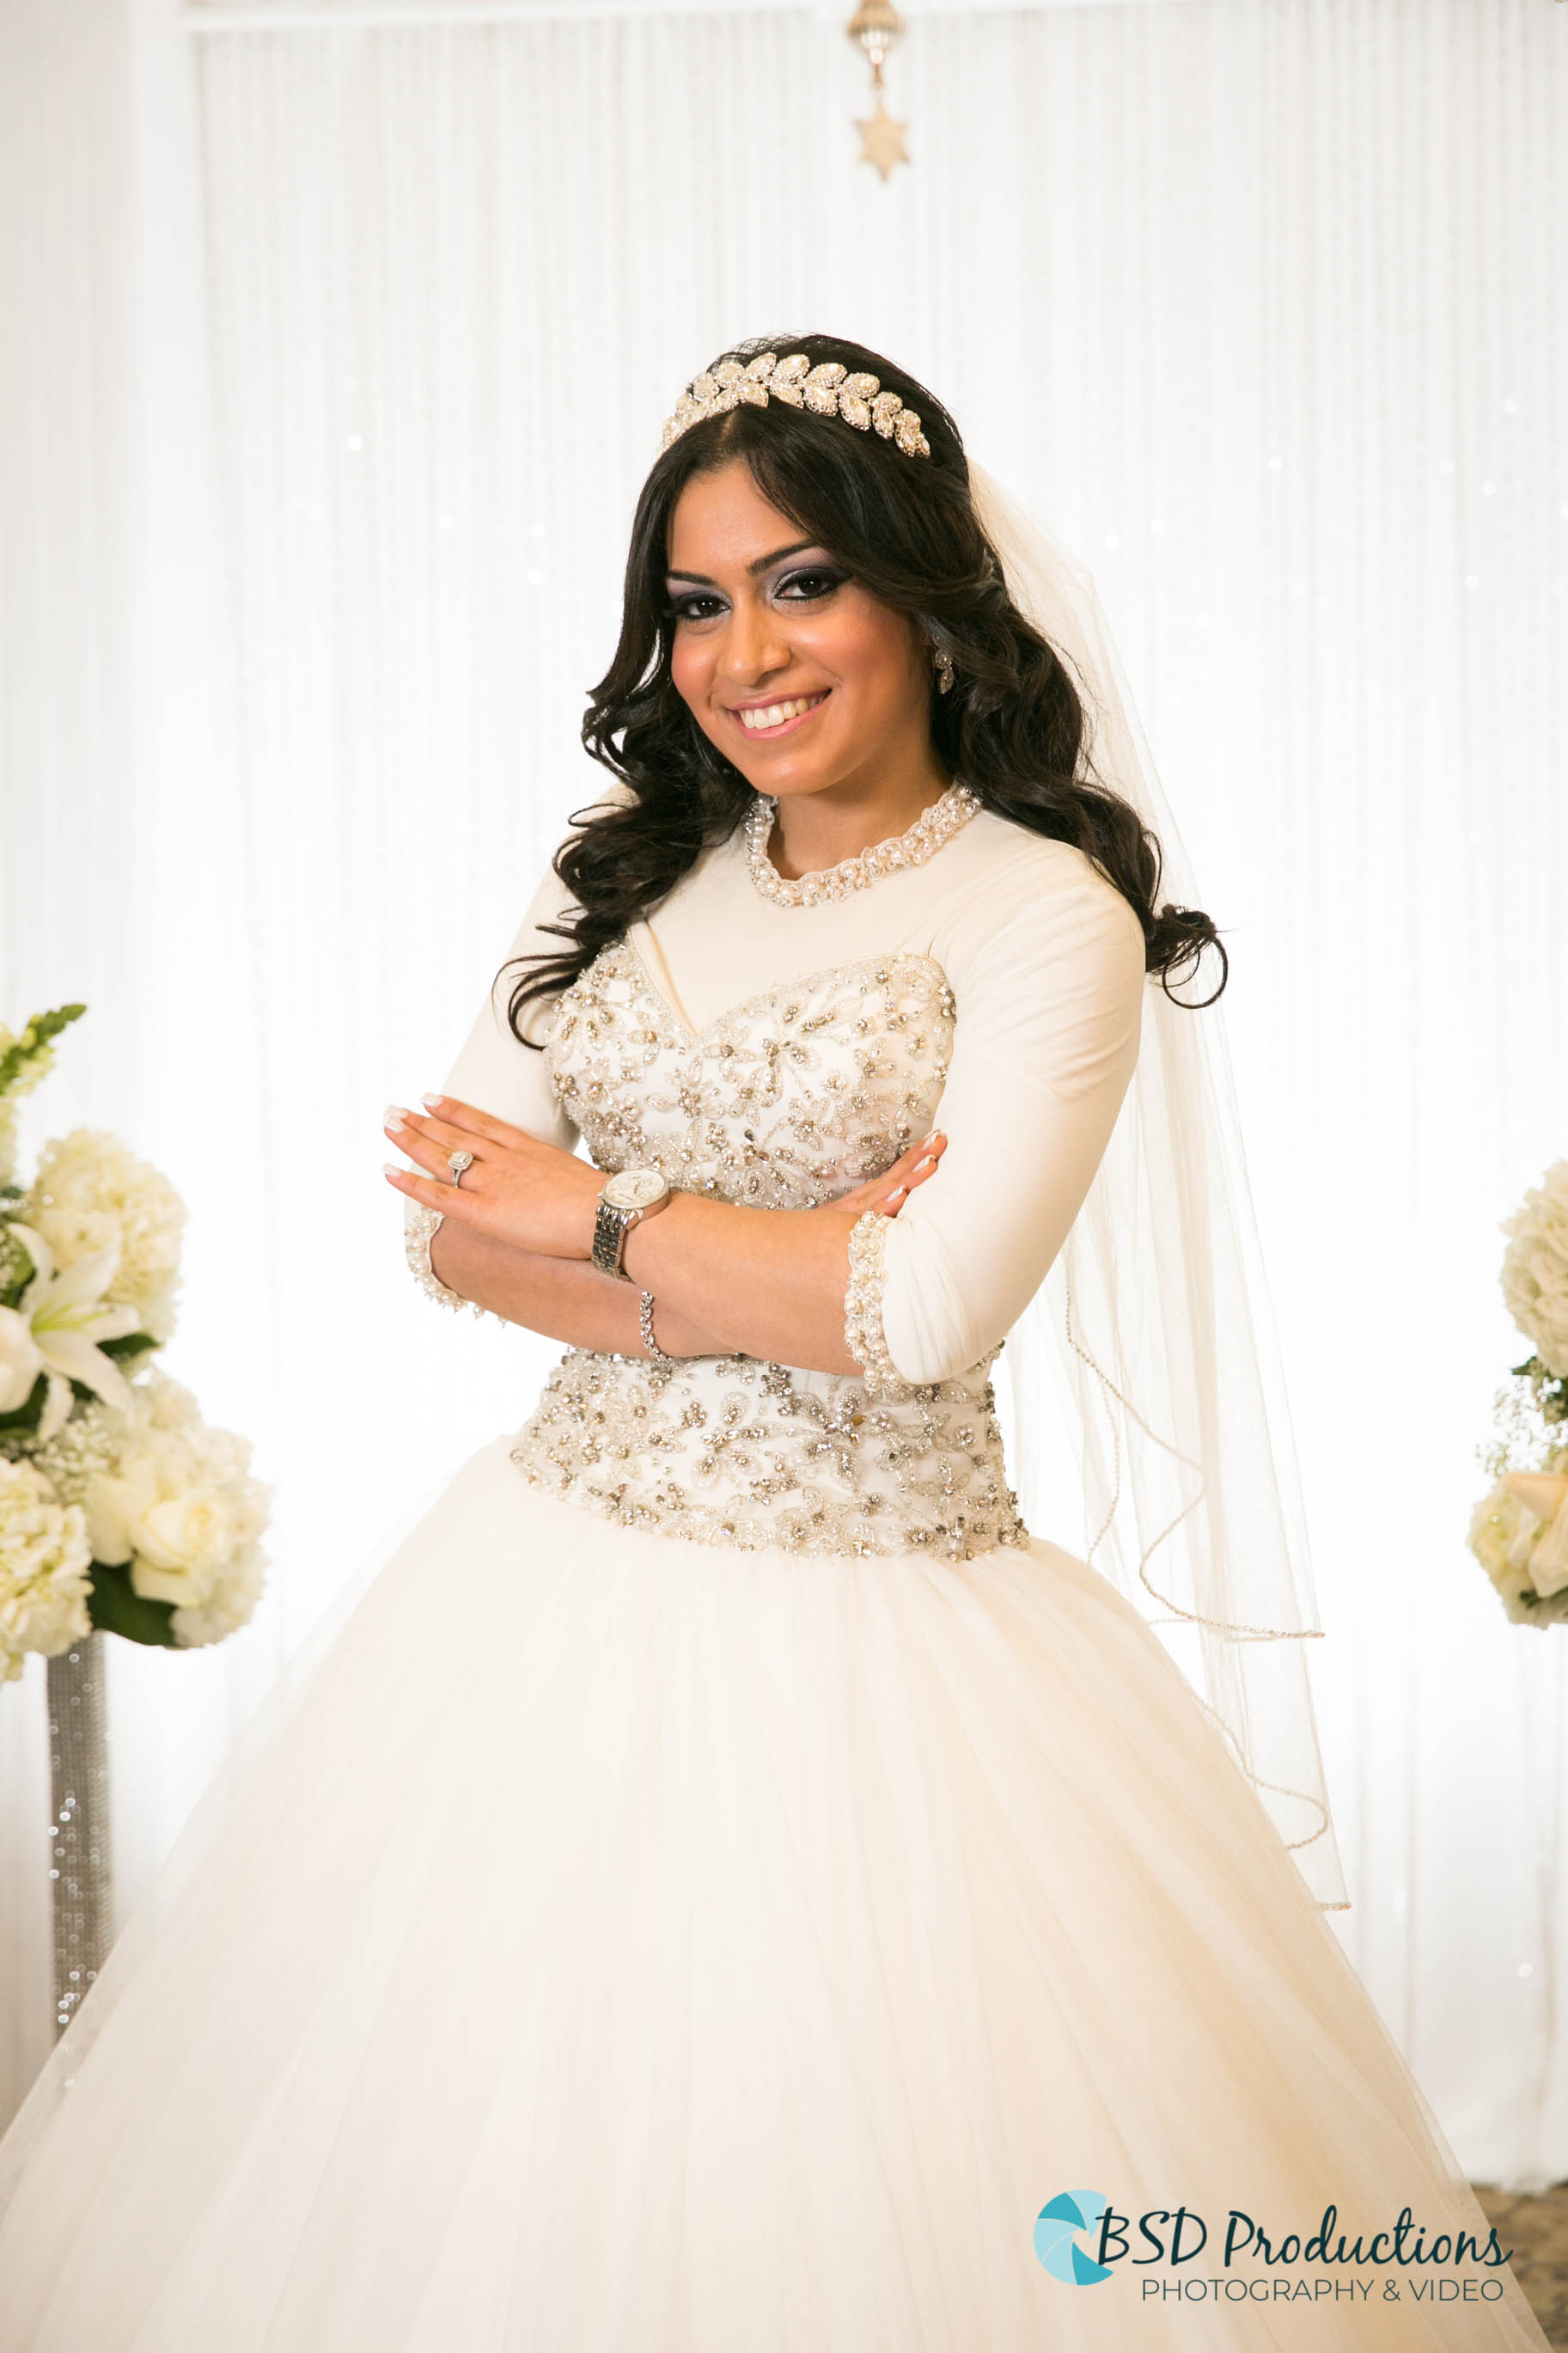 UH5A9014 Wedding – BSD Productions Photography